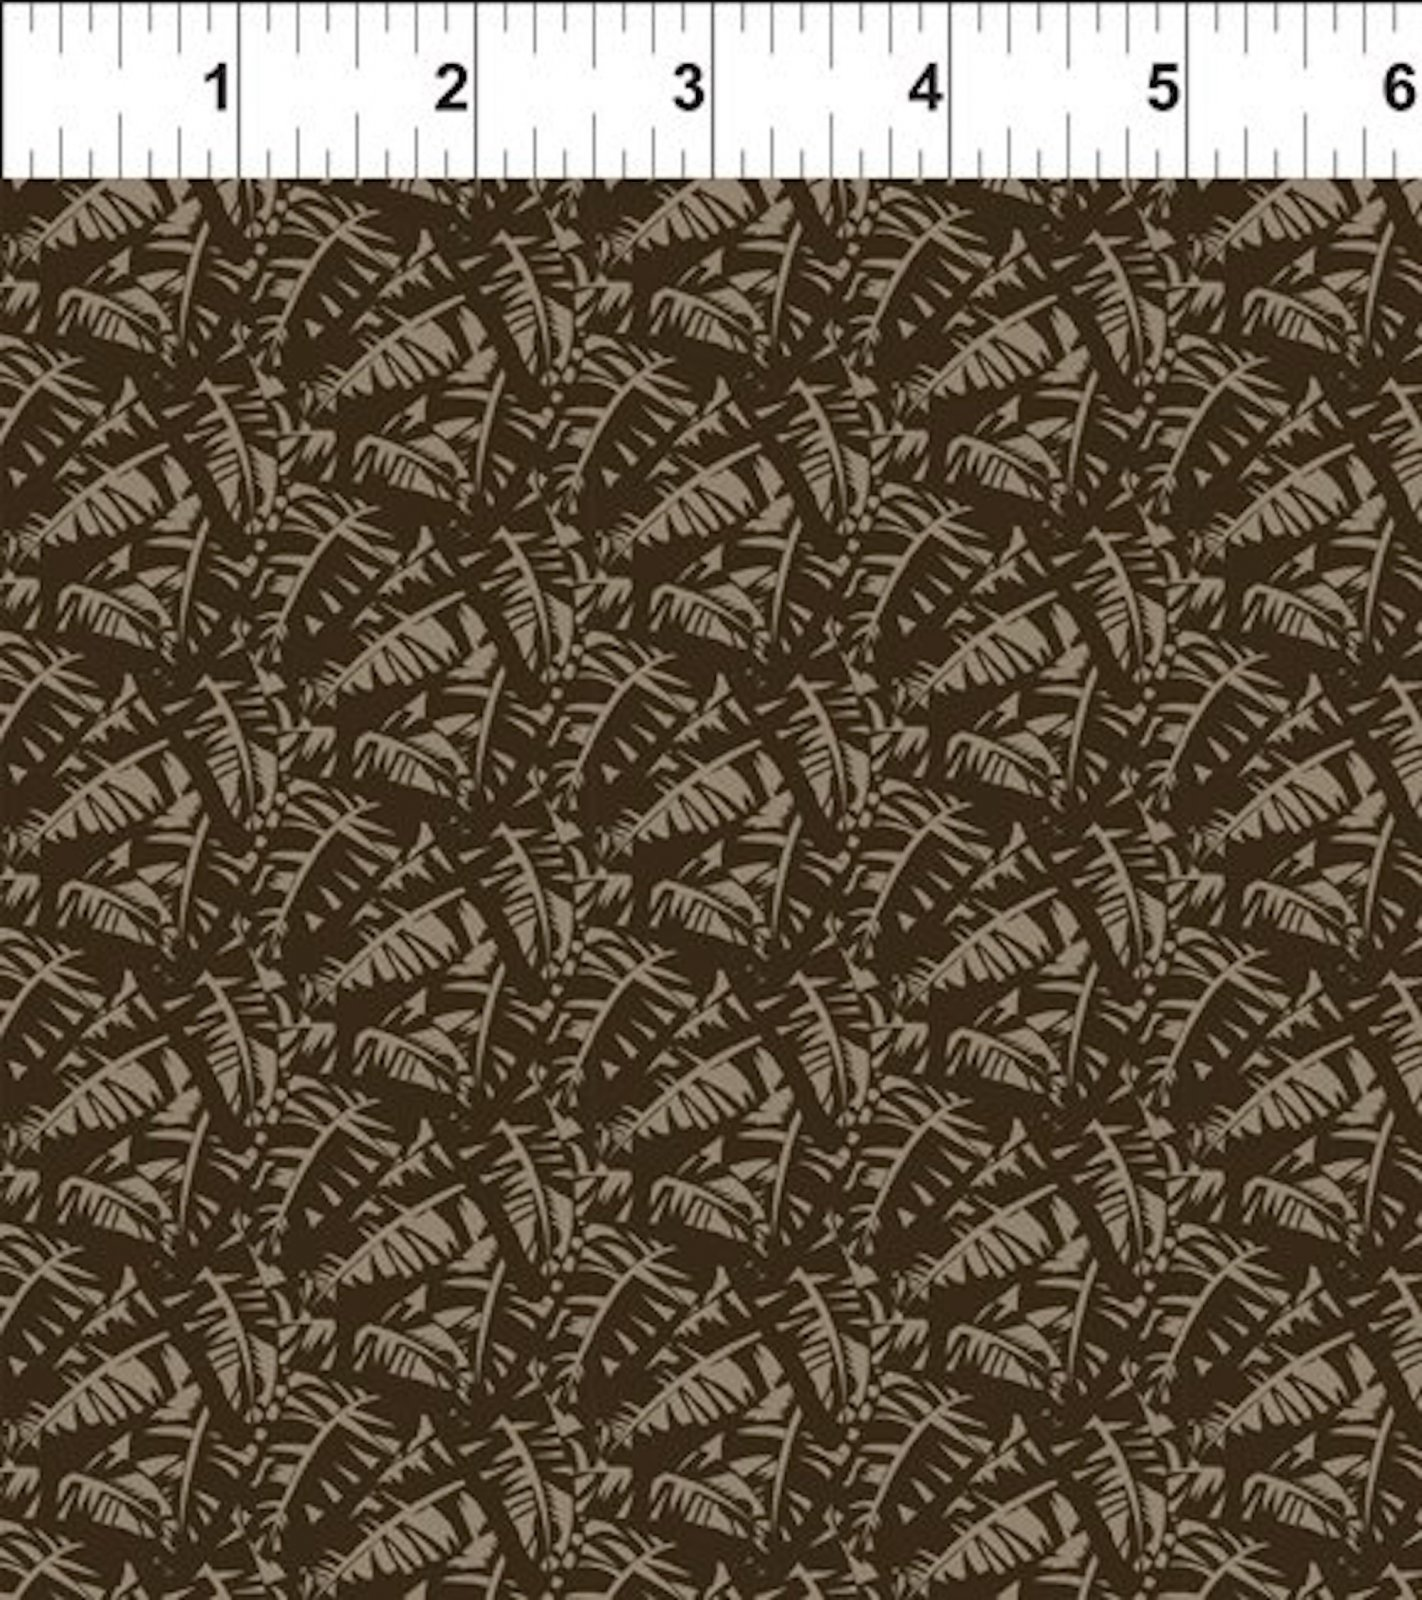 Mini Tropicals Leaf Tonal Brown by In The Beginning